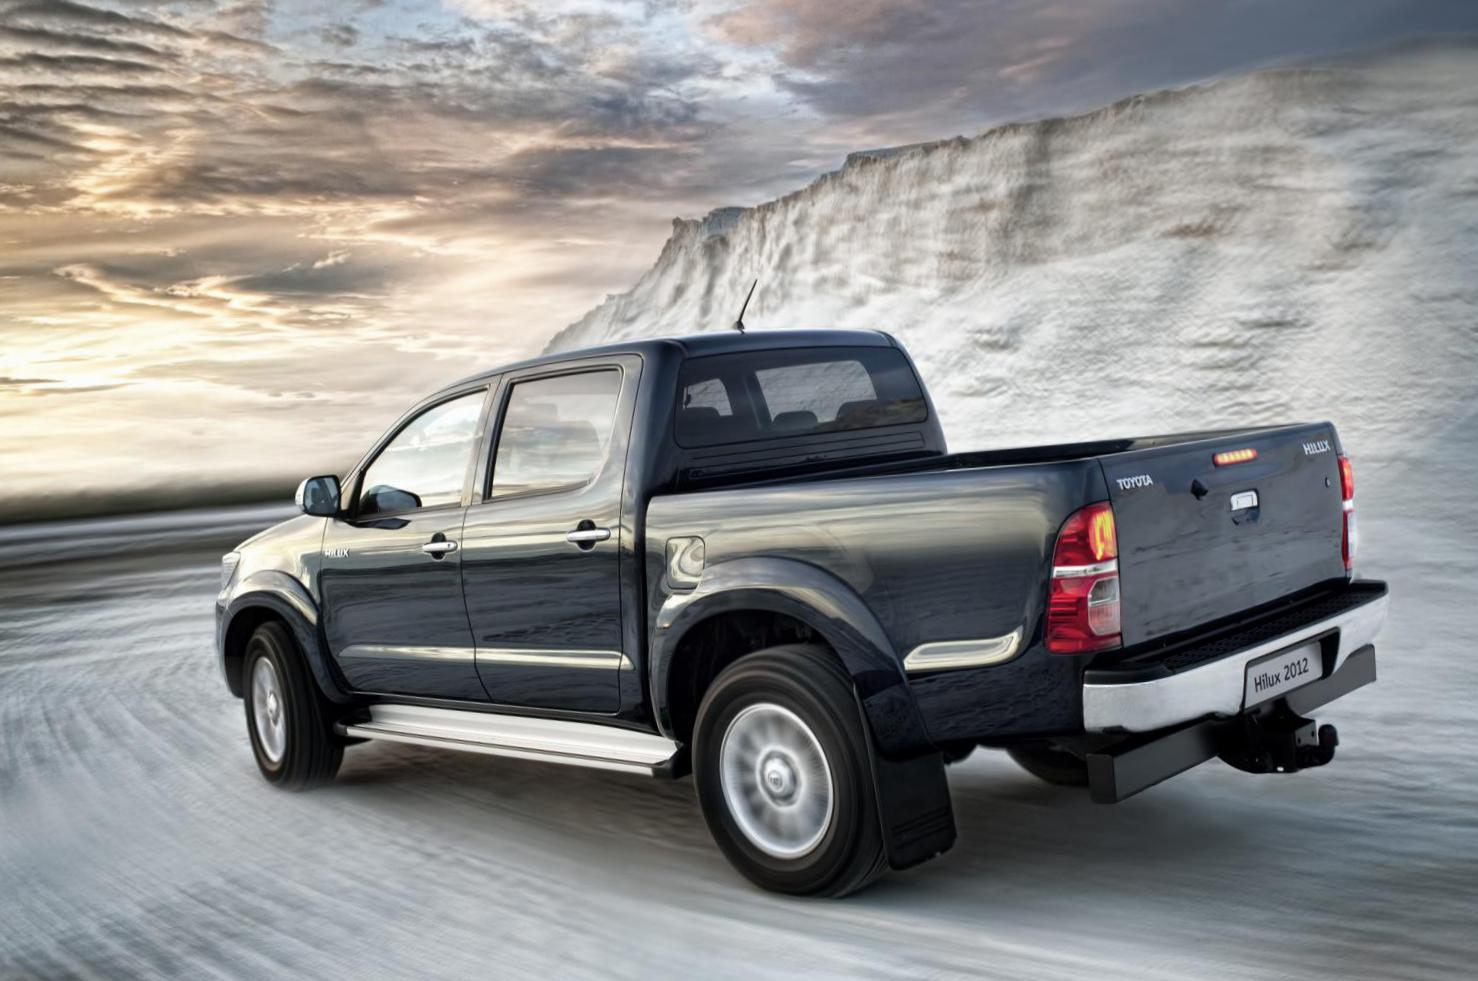 Toyota Hilux Double Cab Characteristics 2012